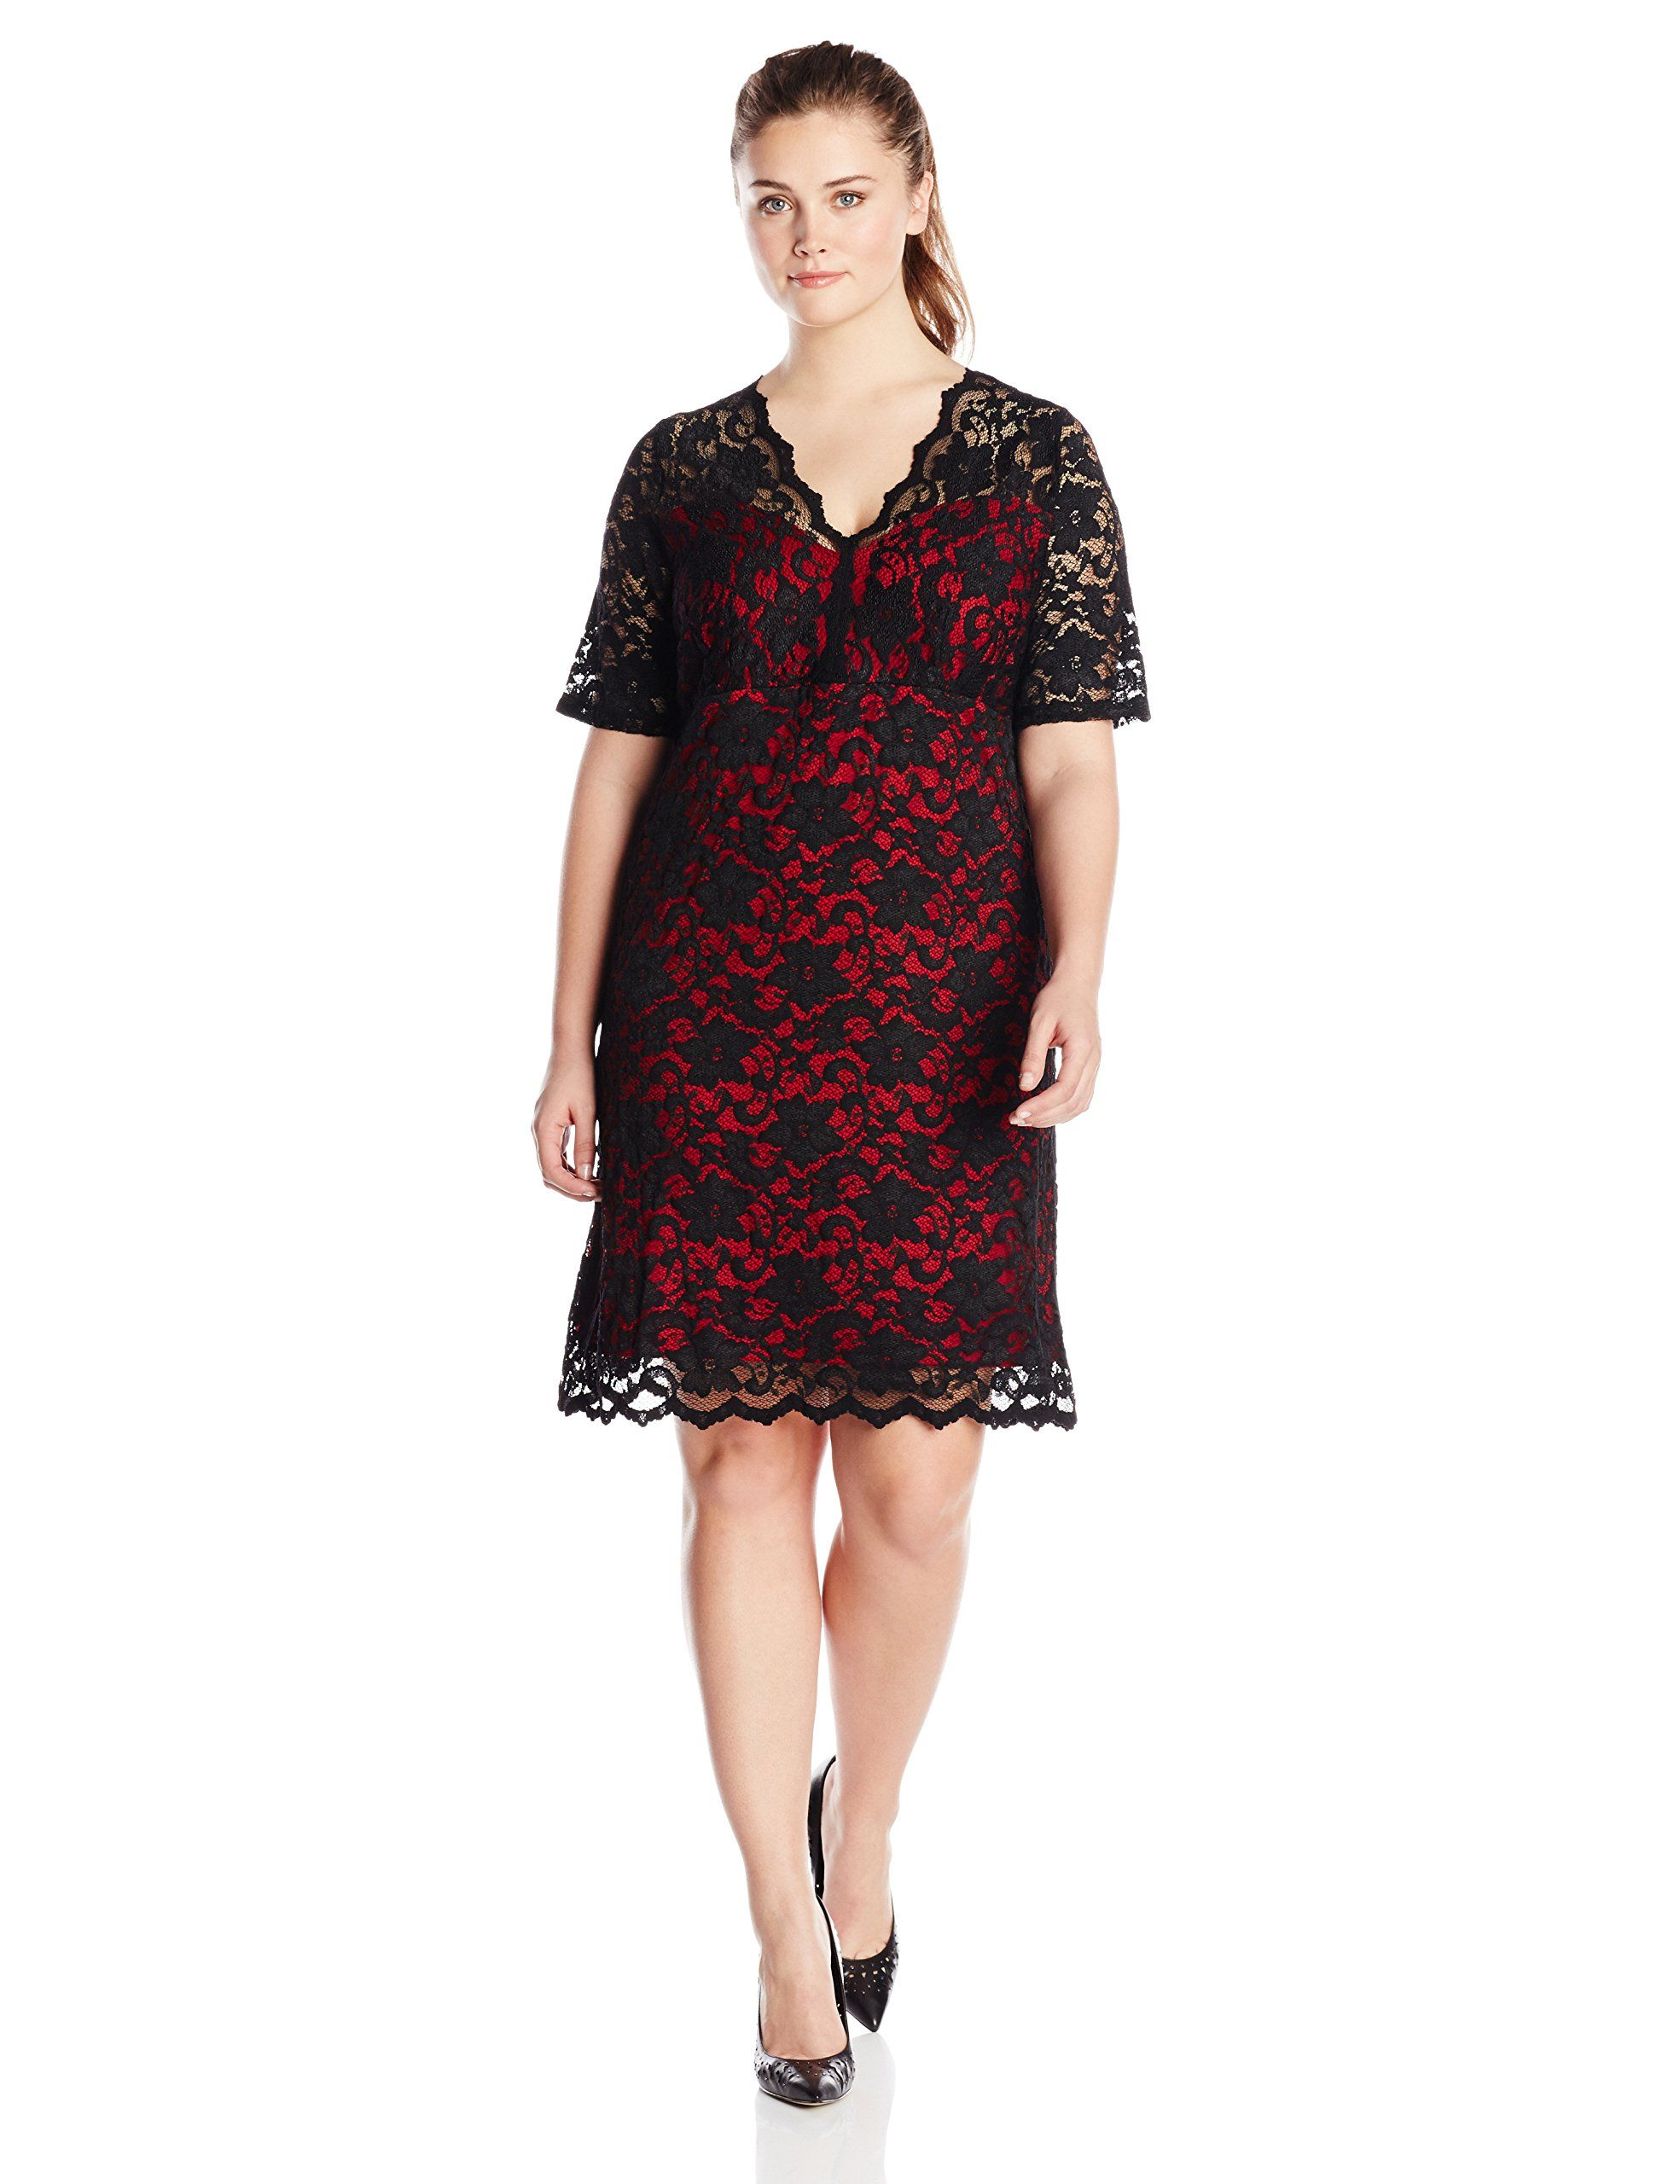 ec3f0f064416 Karen Kane Women s Plus-Size Scallop Red and Black Lace Dress at Amazon  Women s Clothing  Karen Kane  Plus  Plus Size  Fashion  Womens Clothing ...